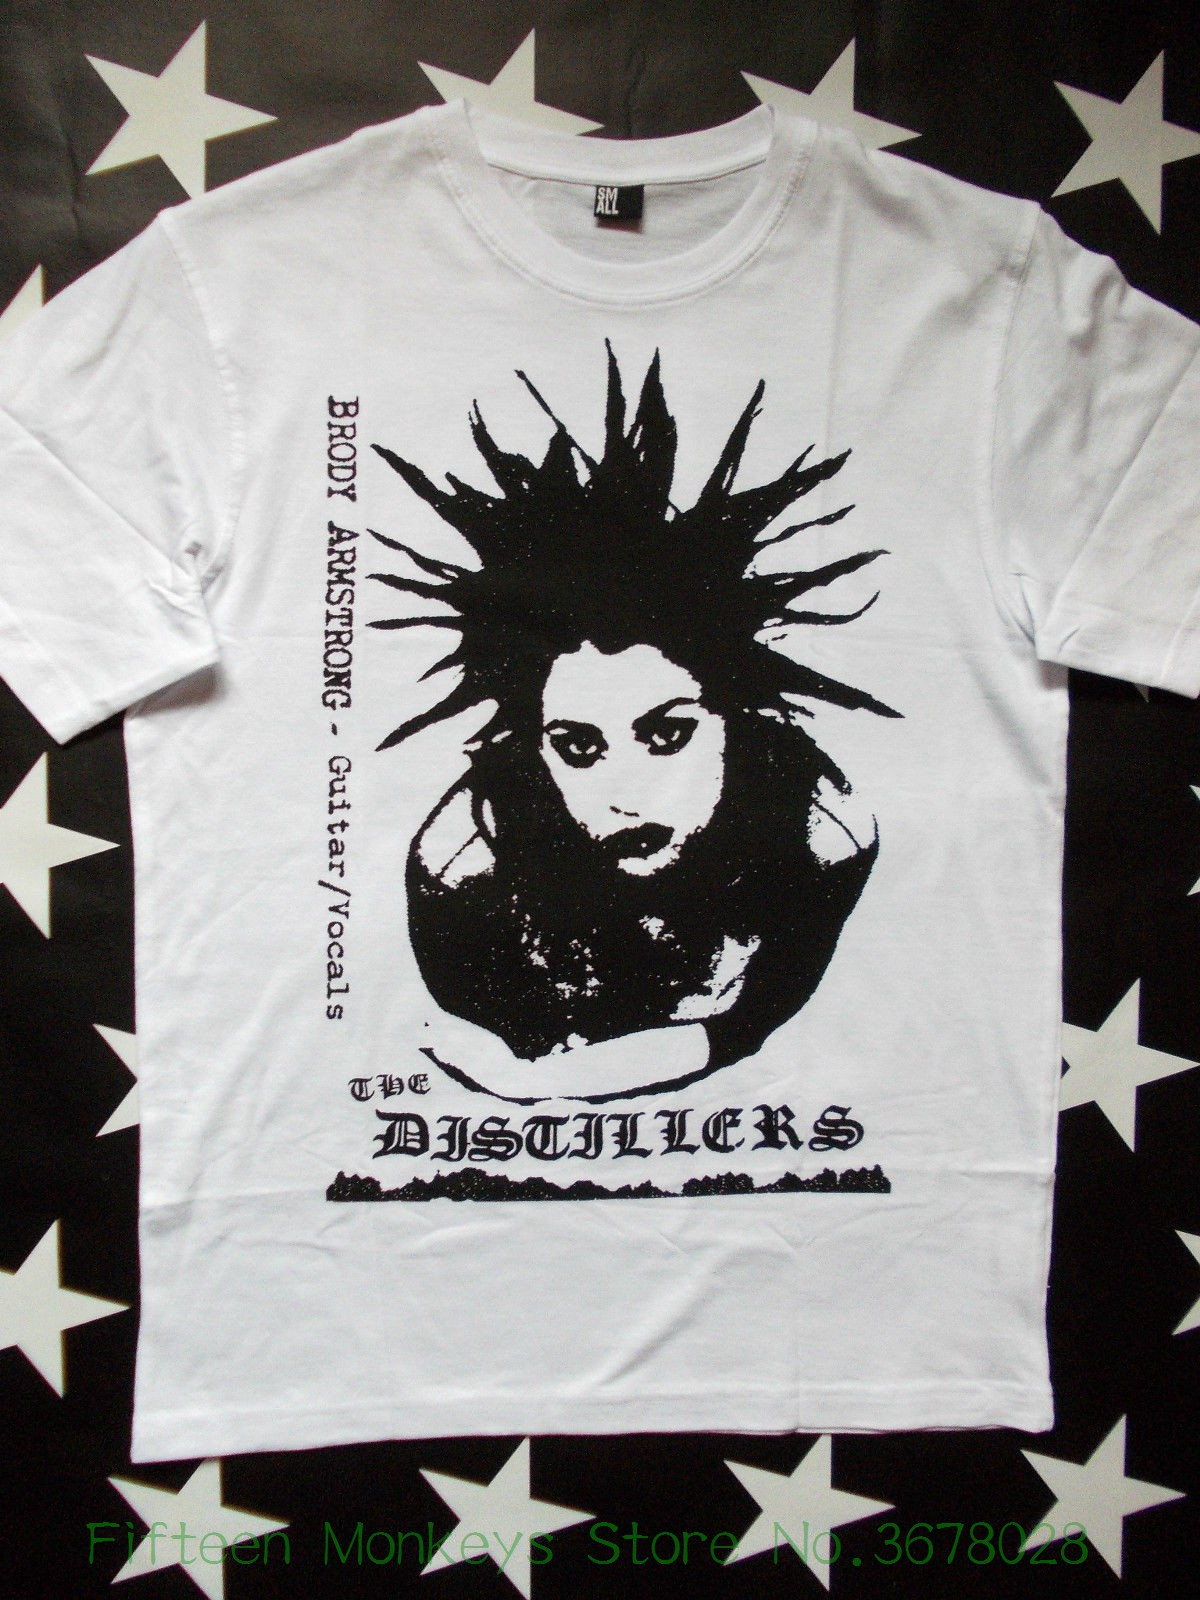 Hot Sale T Shirt Fashion The Distillers Punk Rock Screen Printed Circuit Board Tshirts Sizes S Xxl Brody Dalle Rancid